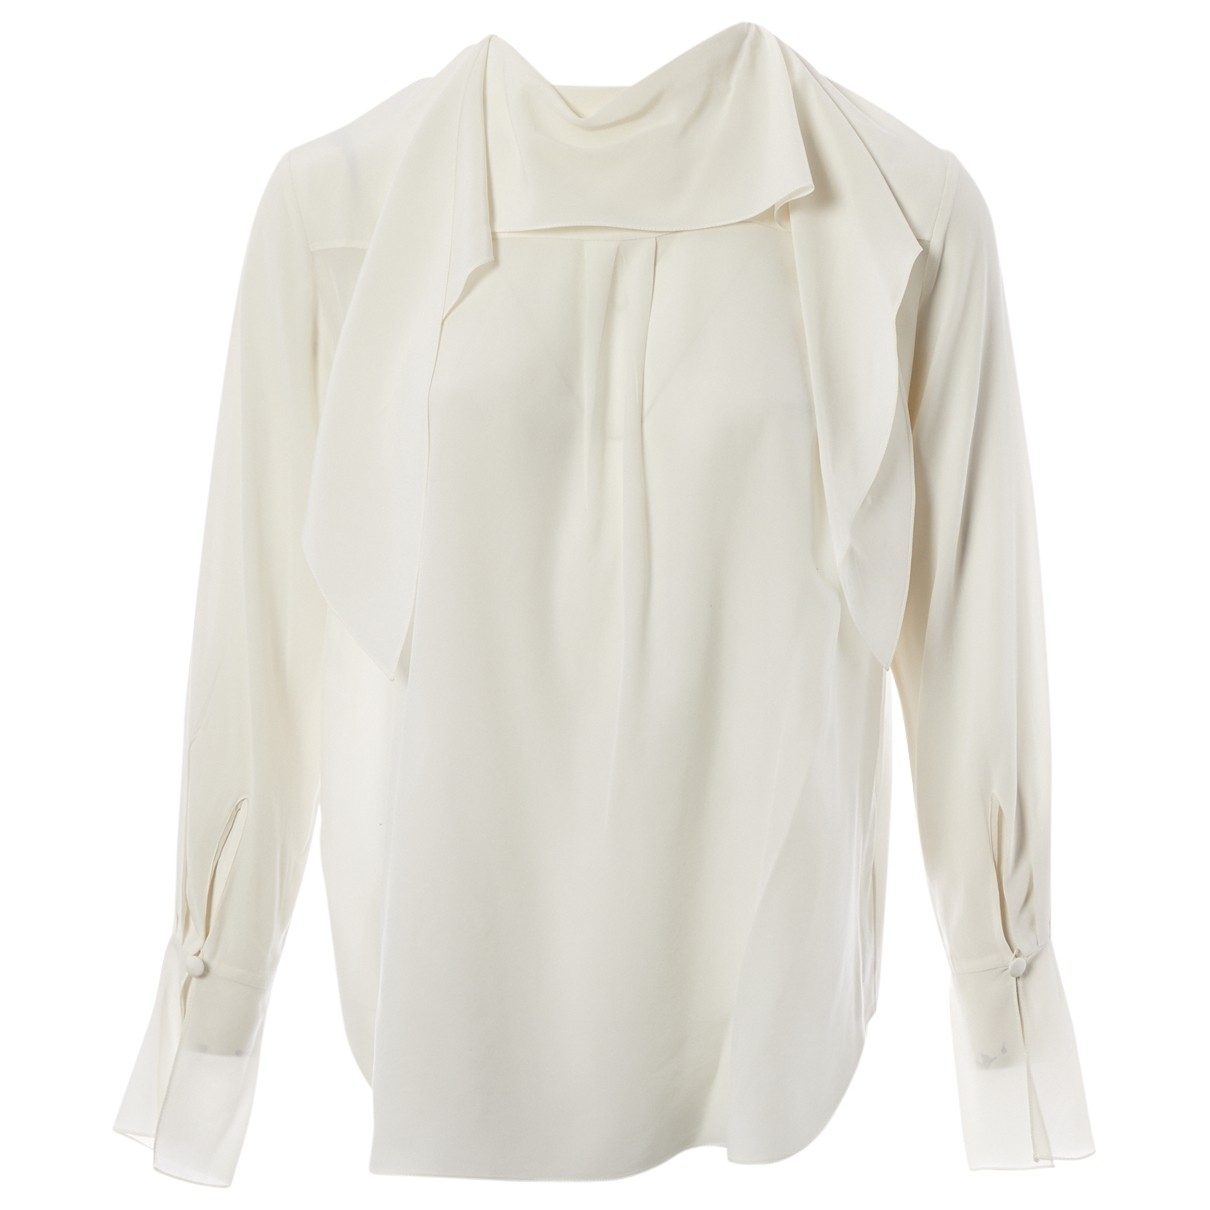 Chloé \N Ecru Silk  top for Women 36 FR